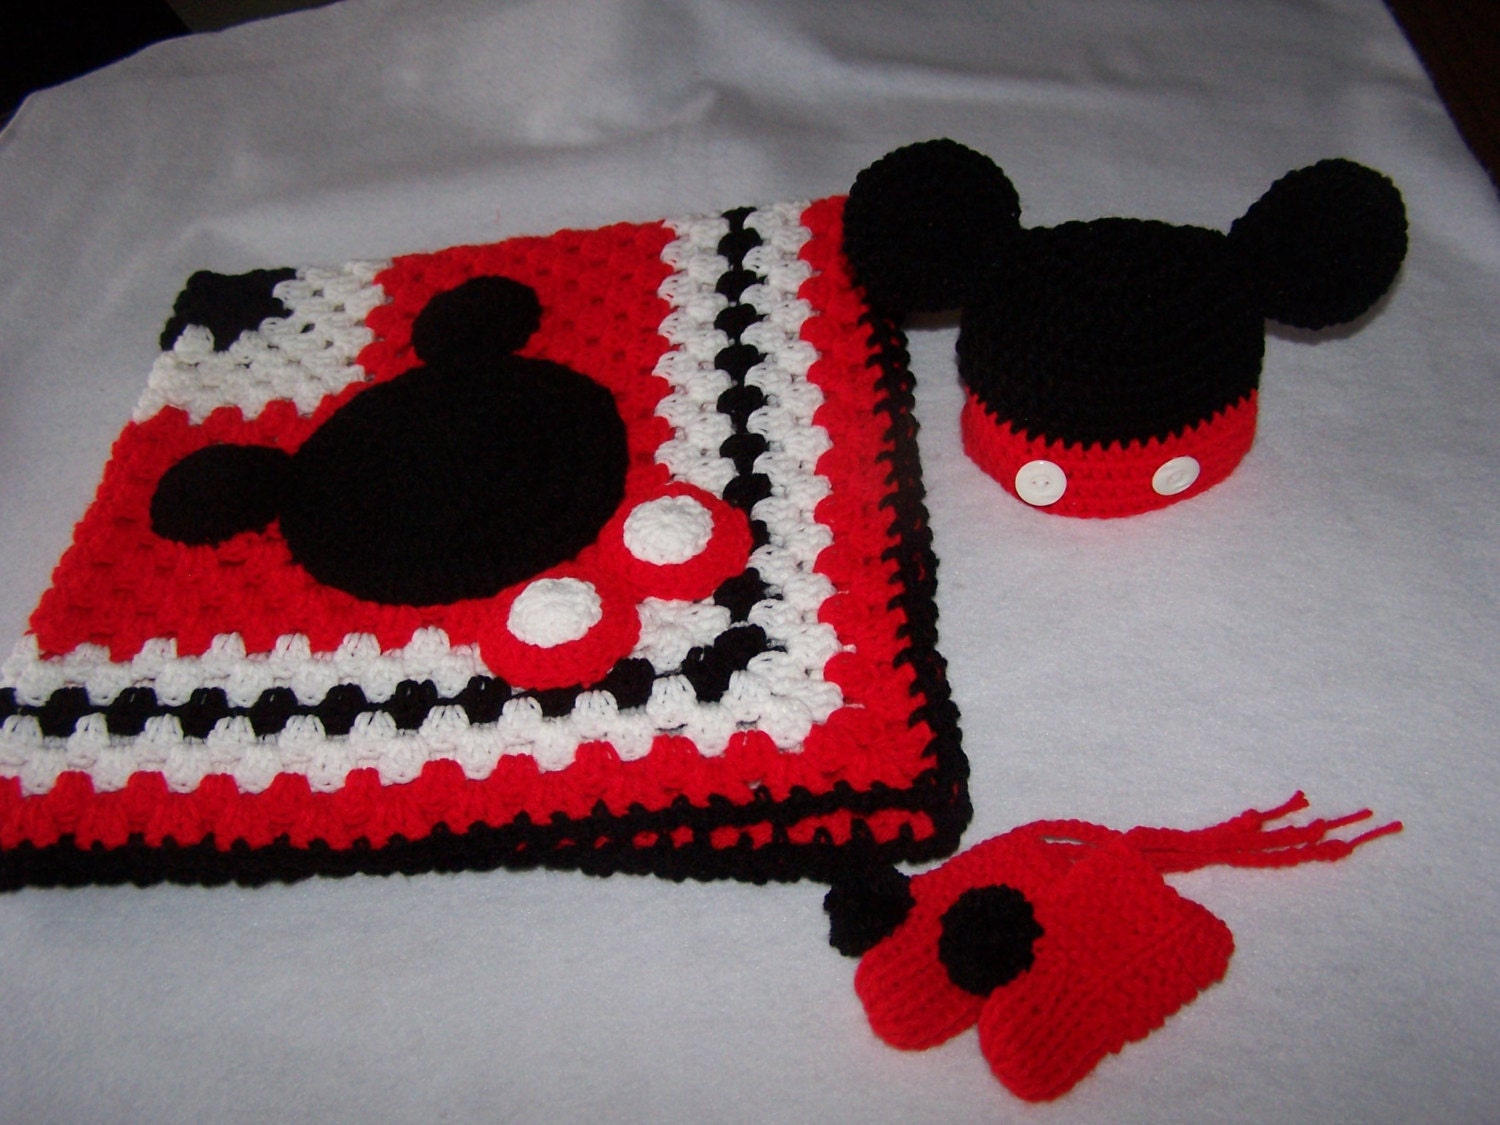 Mickey Mouse Crochet Baby Blanket Pattern : Hand Crocheted Disney Mickey Mouse Granny Square Baby Blanket